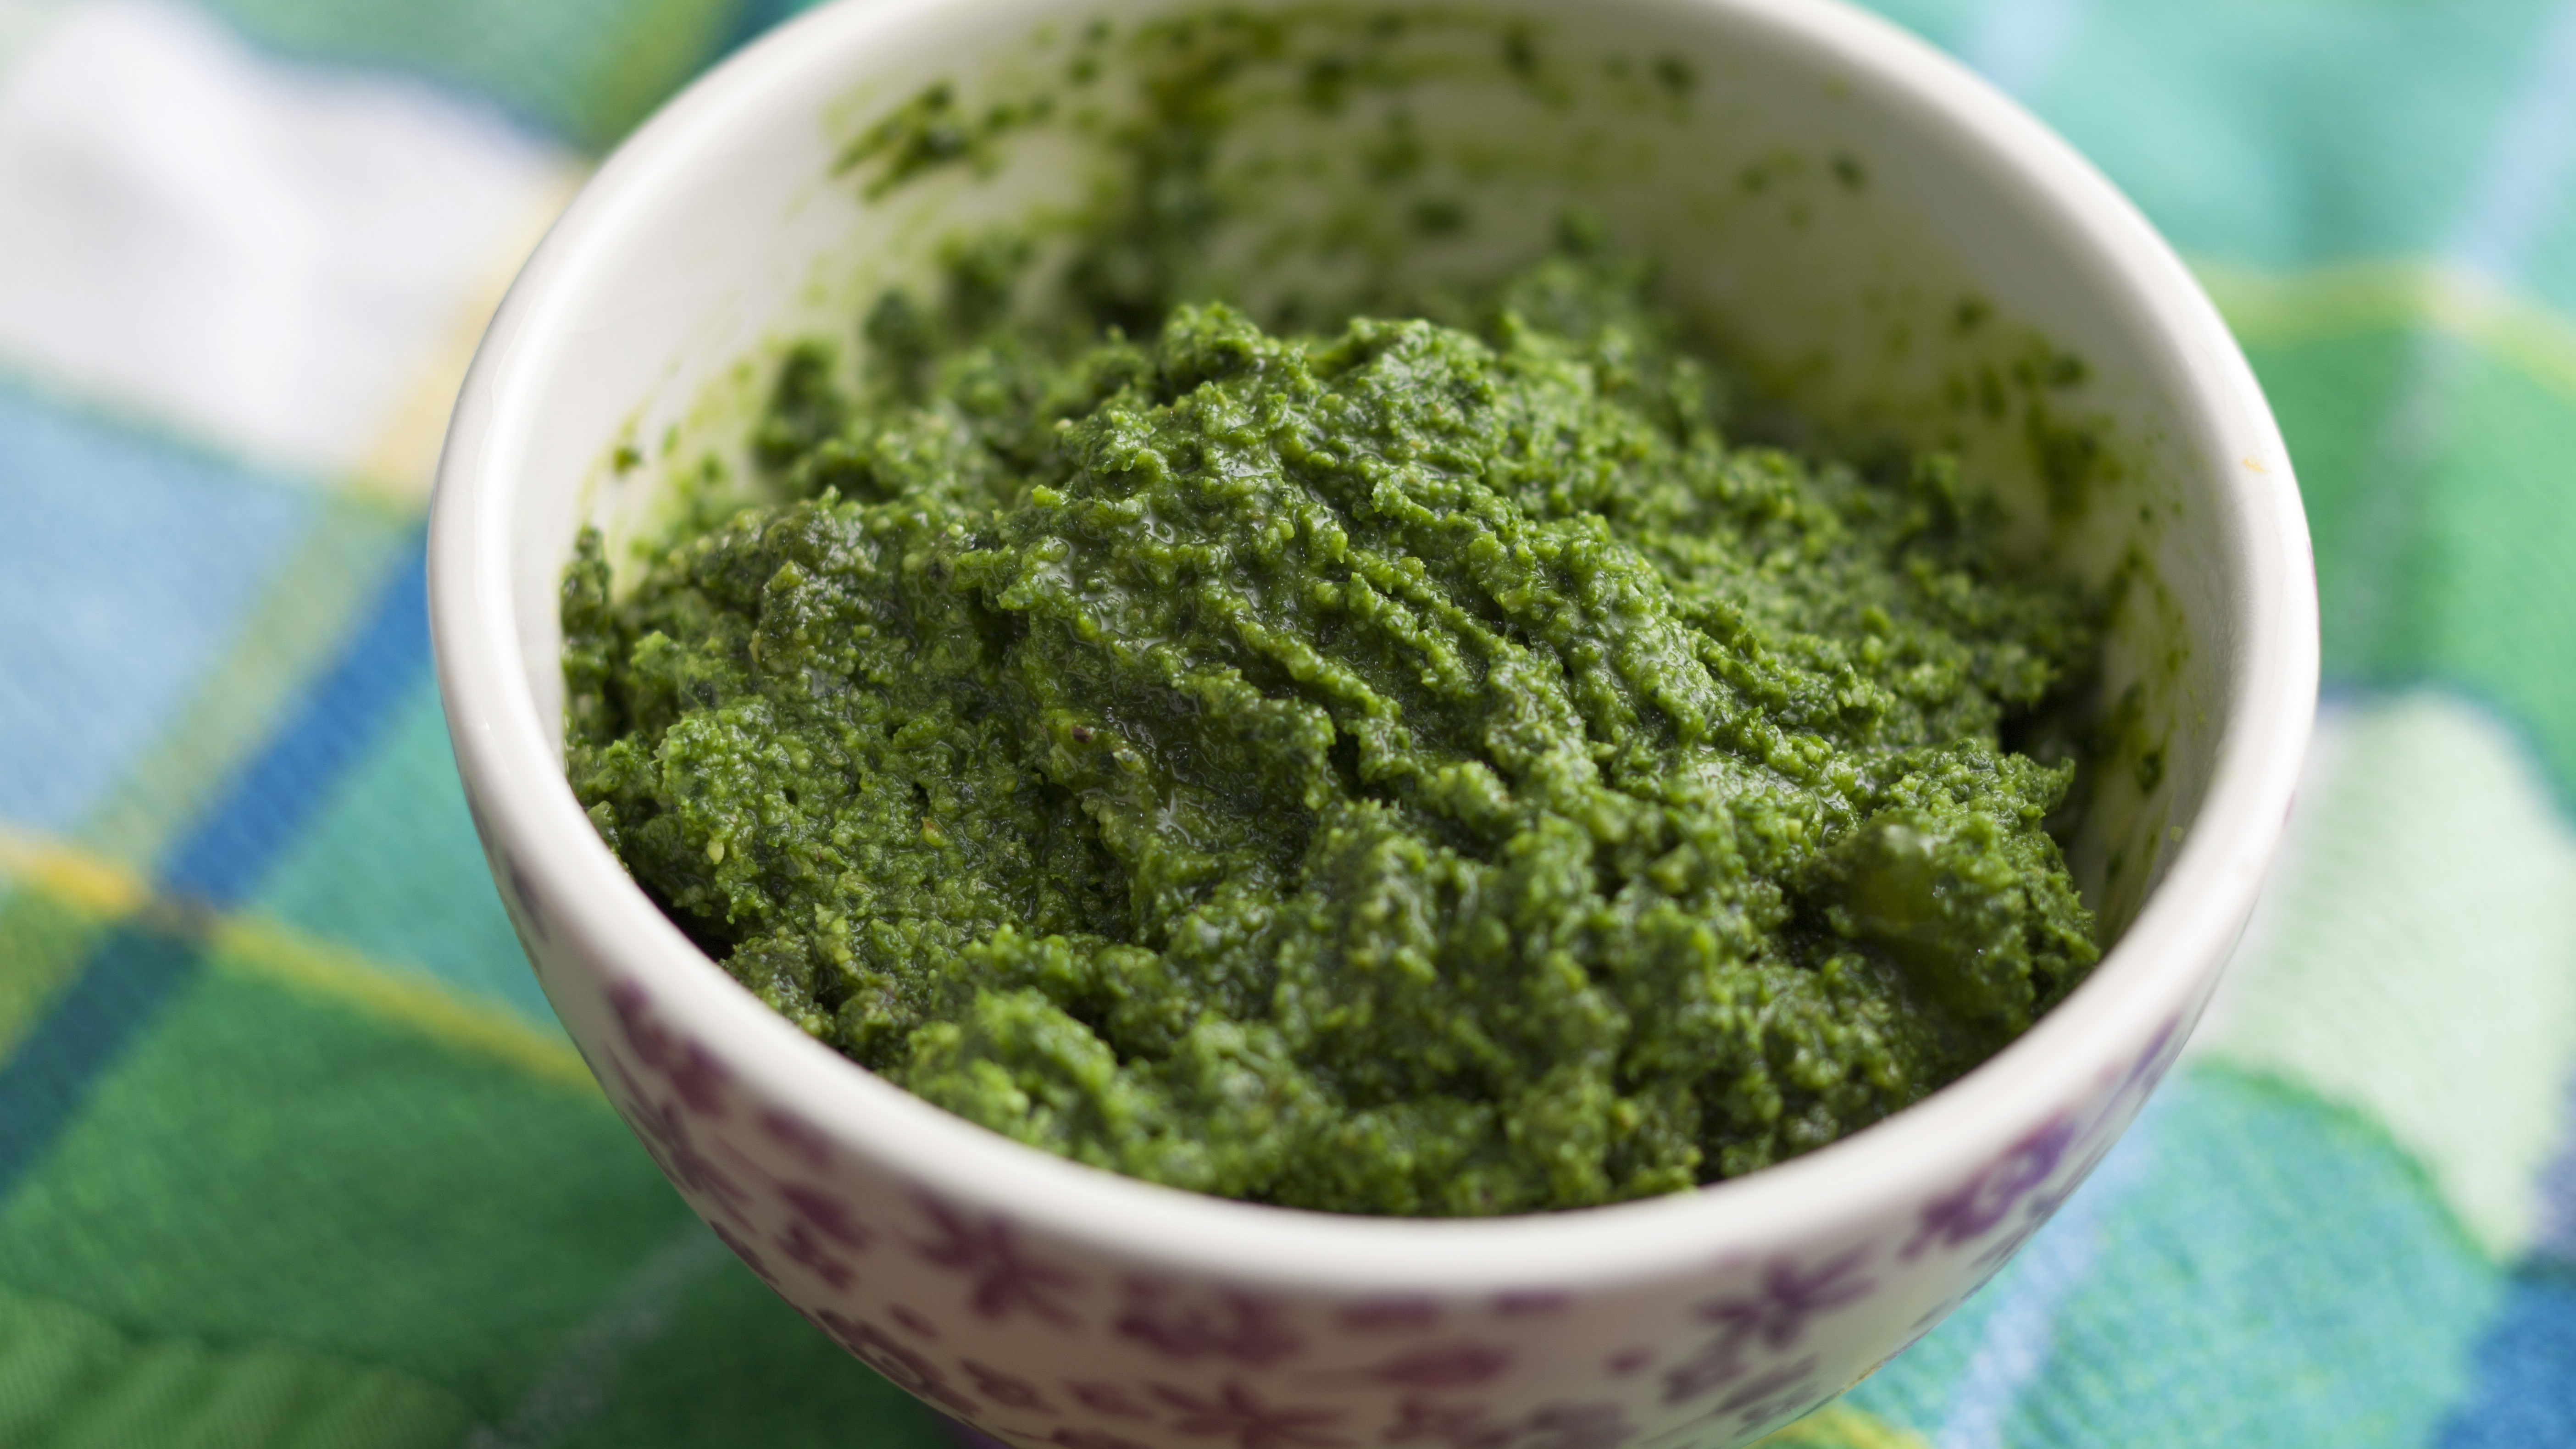 Country Magic Kale Pesto by The Kilted Chef